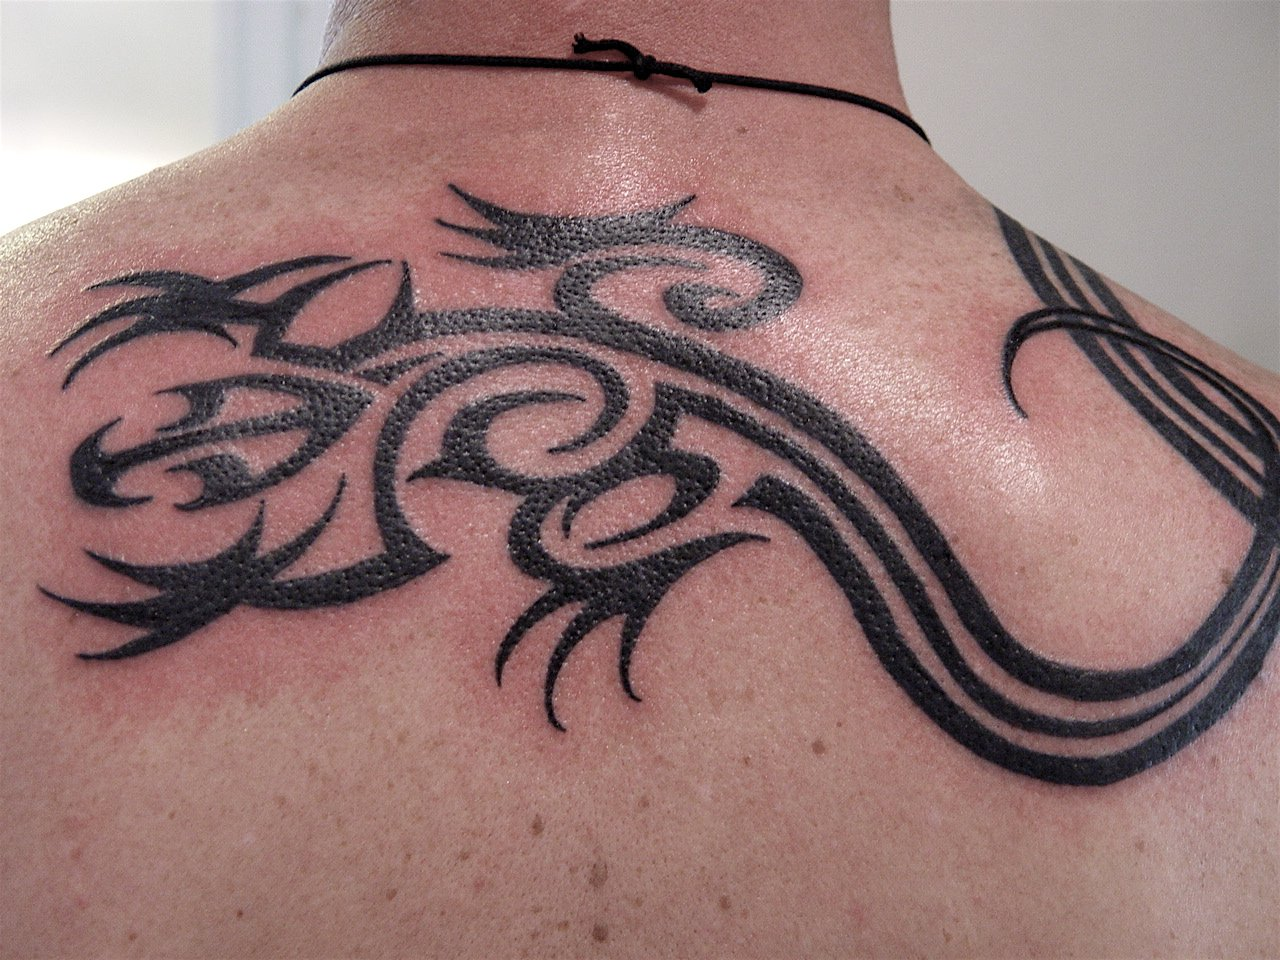 Lizard+tattoos+ Free Tattoooblogspotcom+ Tribal Lizard By Ron Hendon